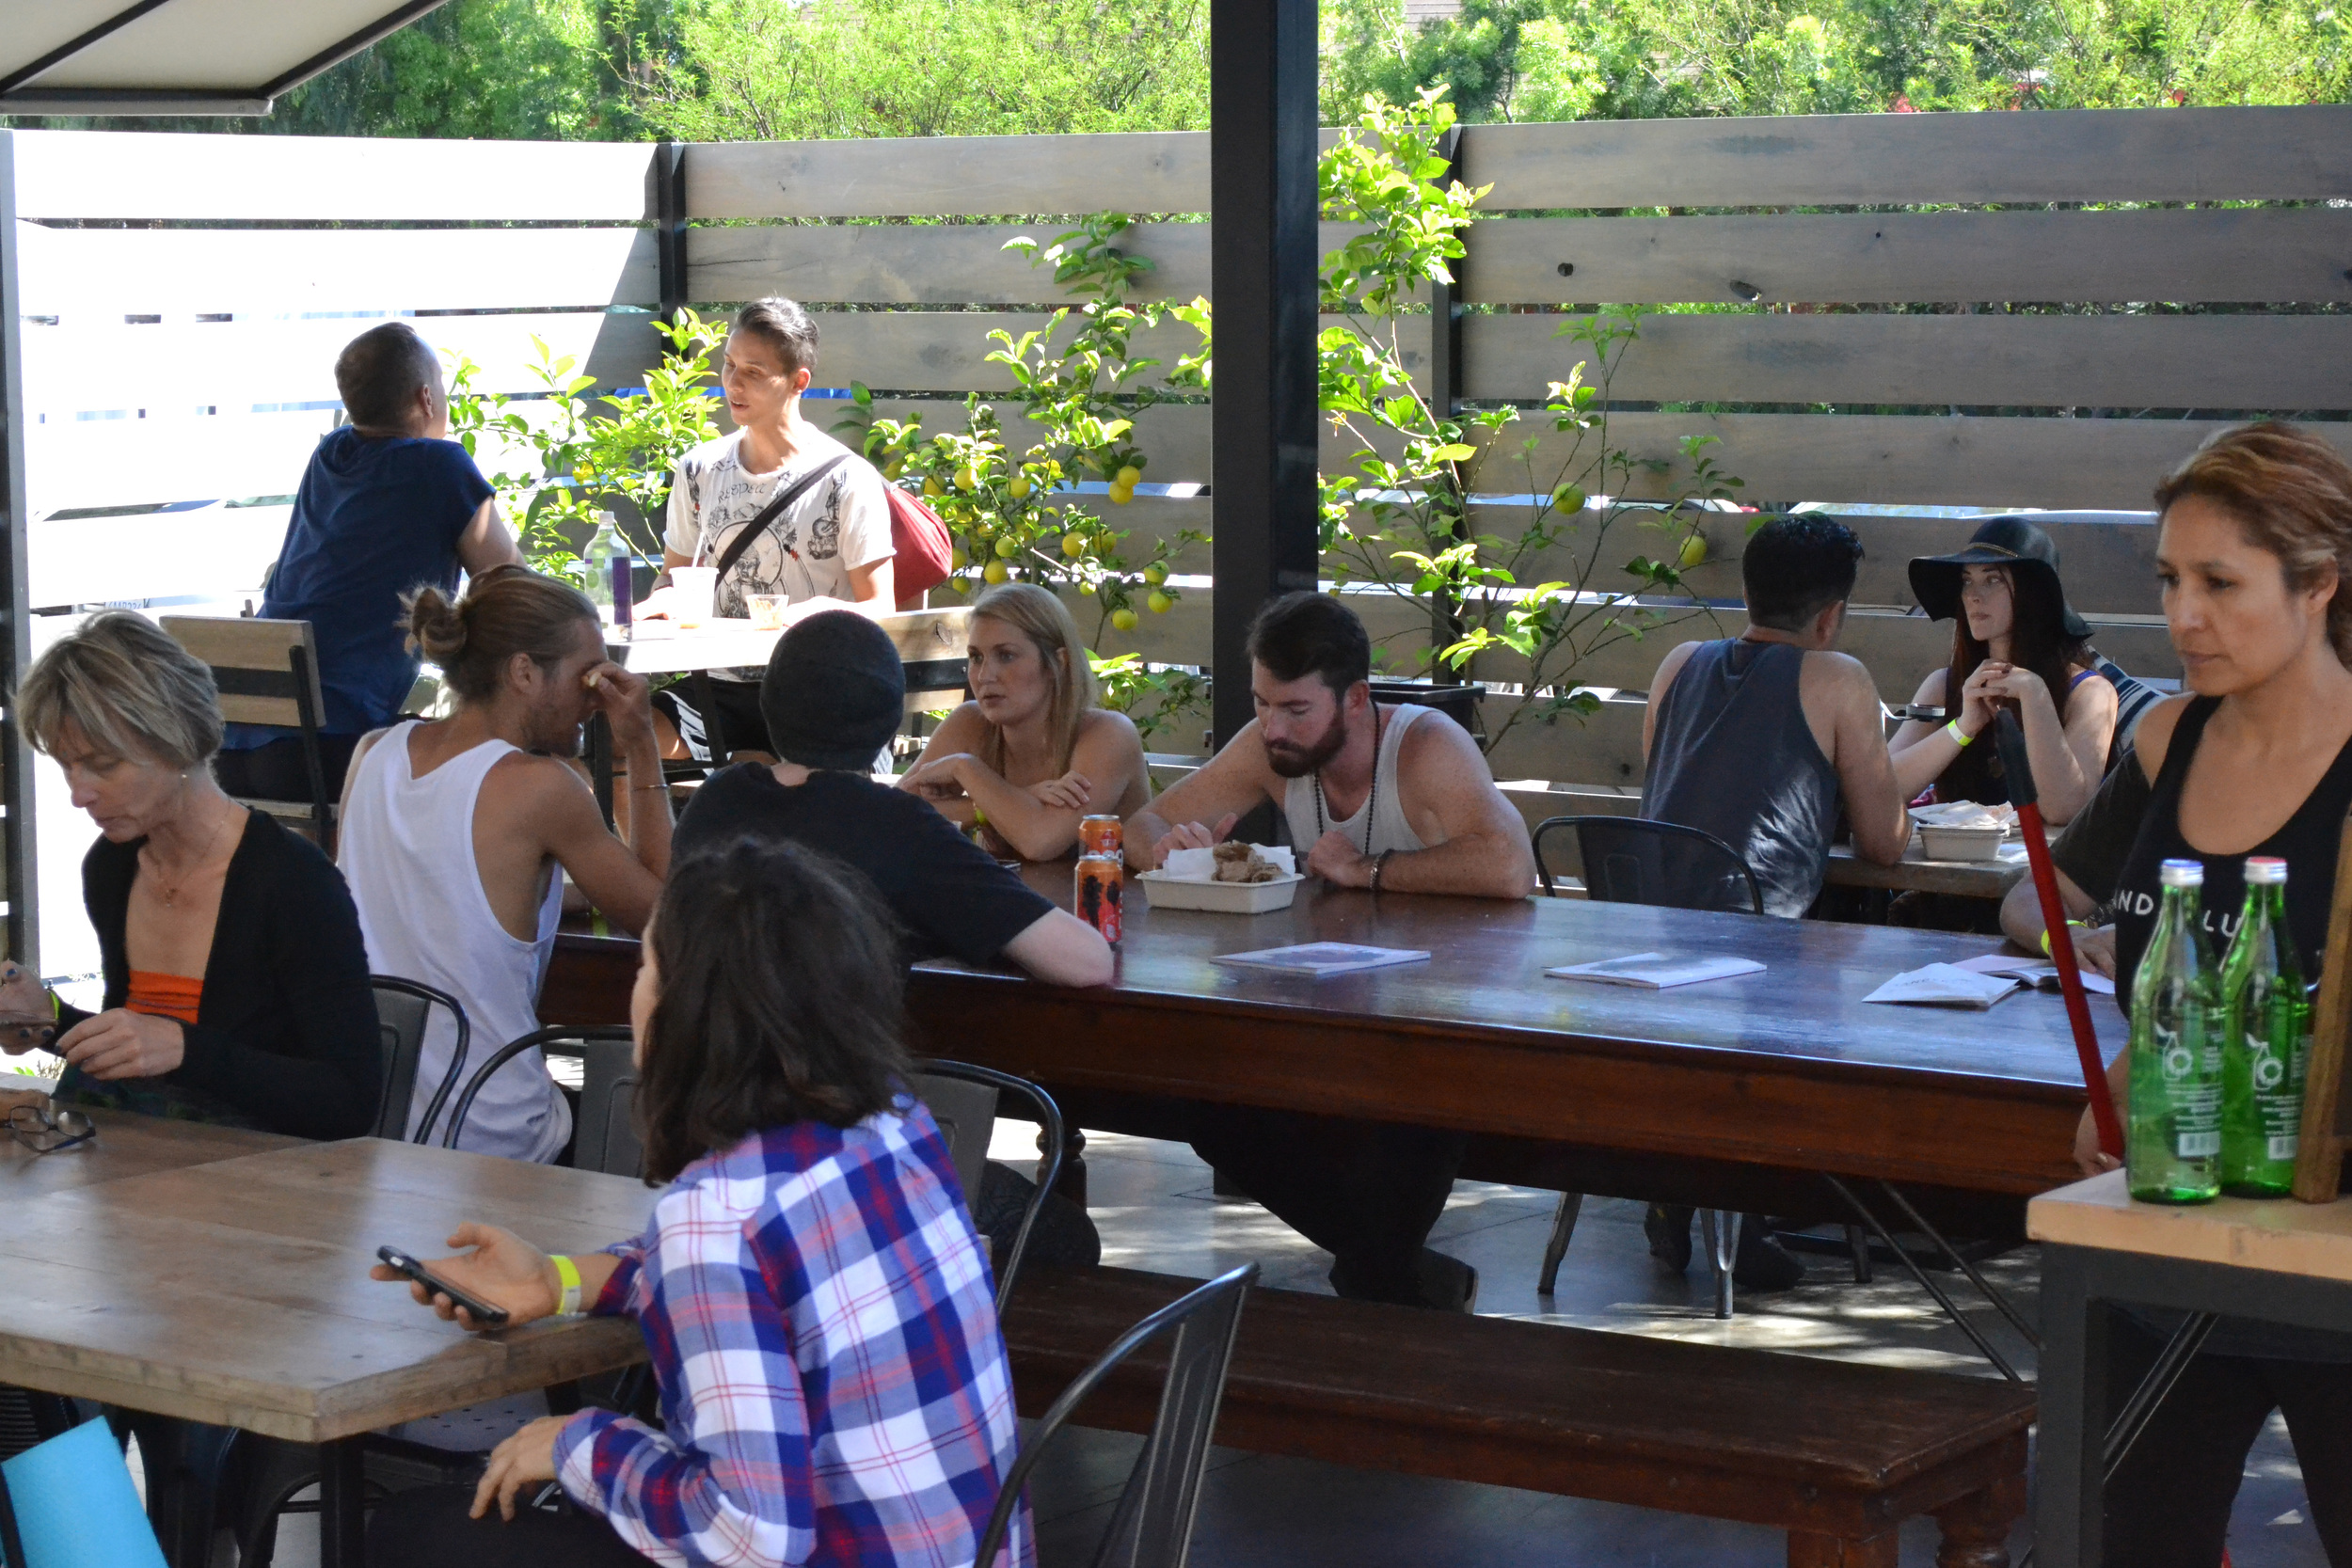 Food was less a focus at Wanderlust than last year at the Springs, but the outdoor dining area was a nice quiet area to escape the bustling interior spaces.